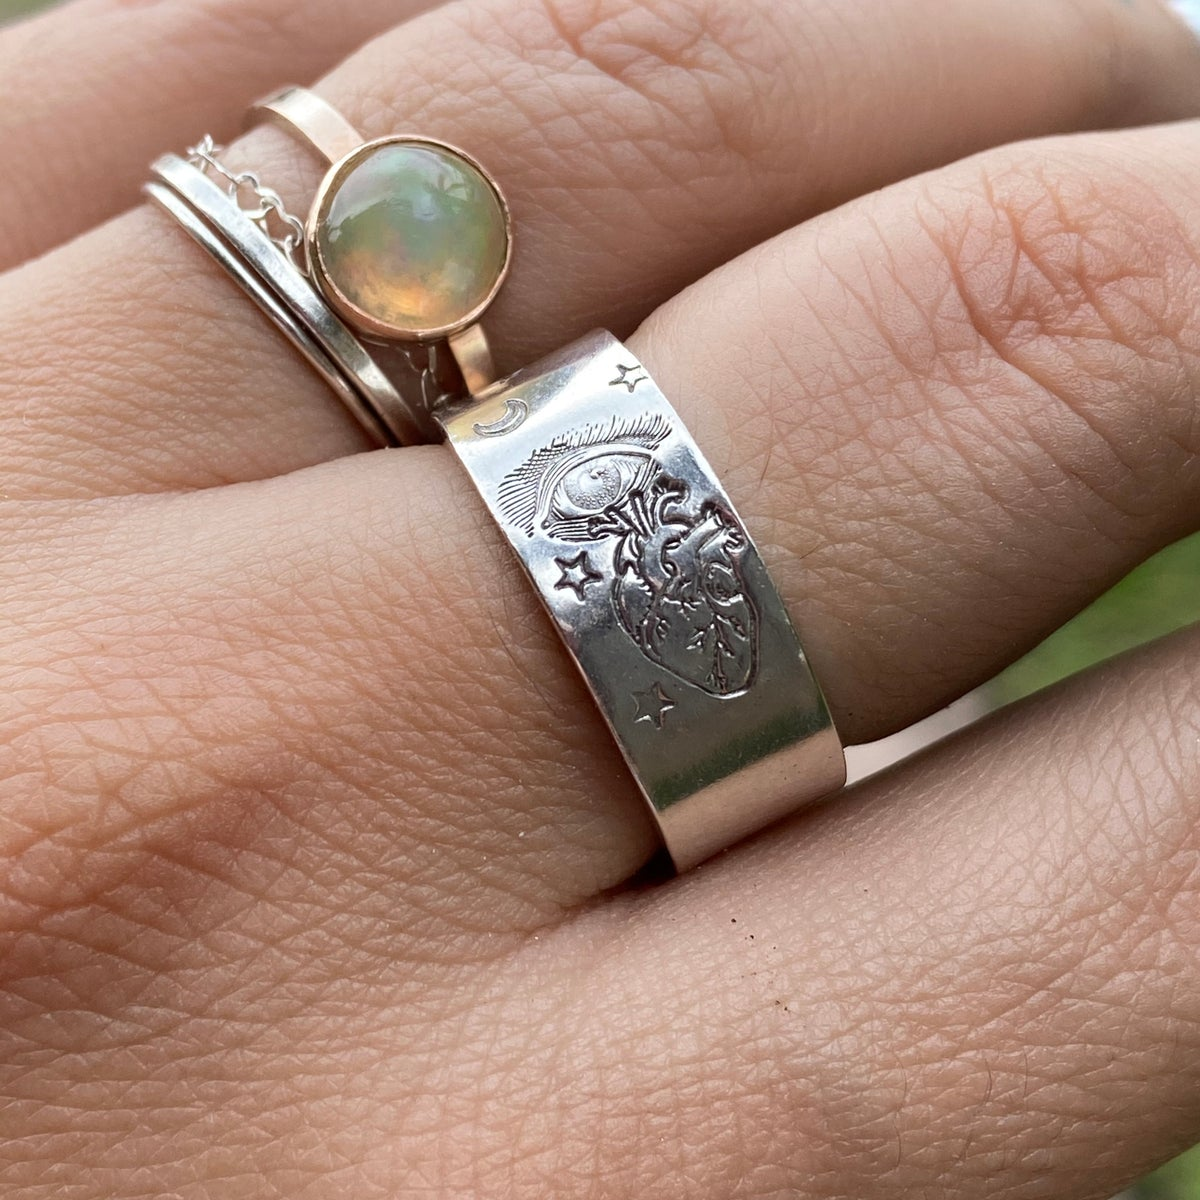 Image of The little prince ring